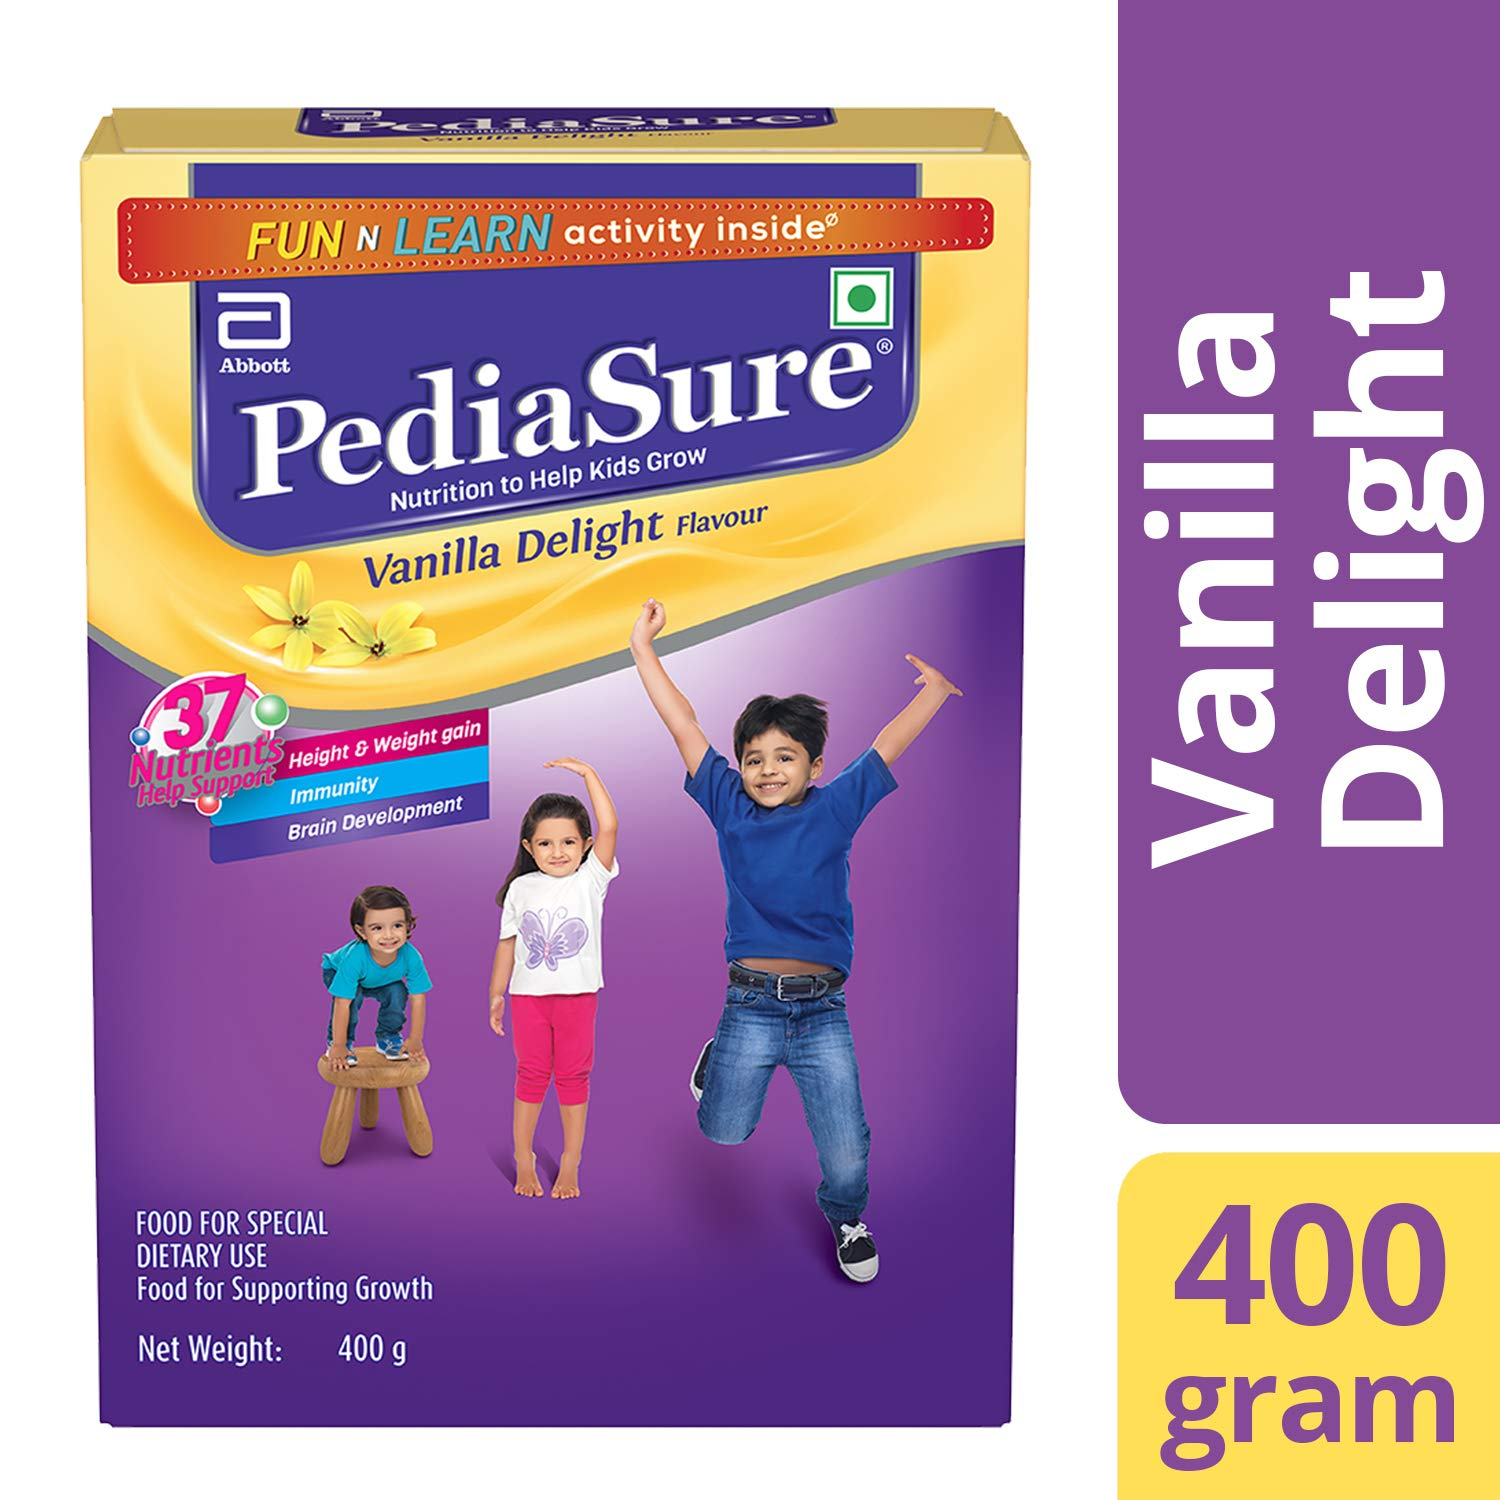 Buy Pediasure Health Nutrition Drink Powder For Kids Growth 400g Enfagrow A Plus 3 1800 Gram Vanilla Box Online At Low Prices In India